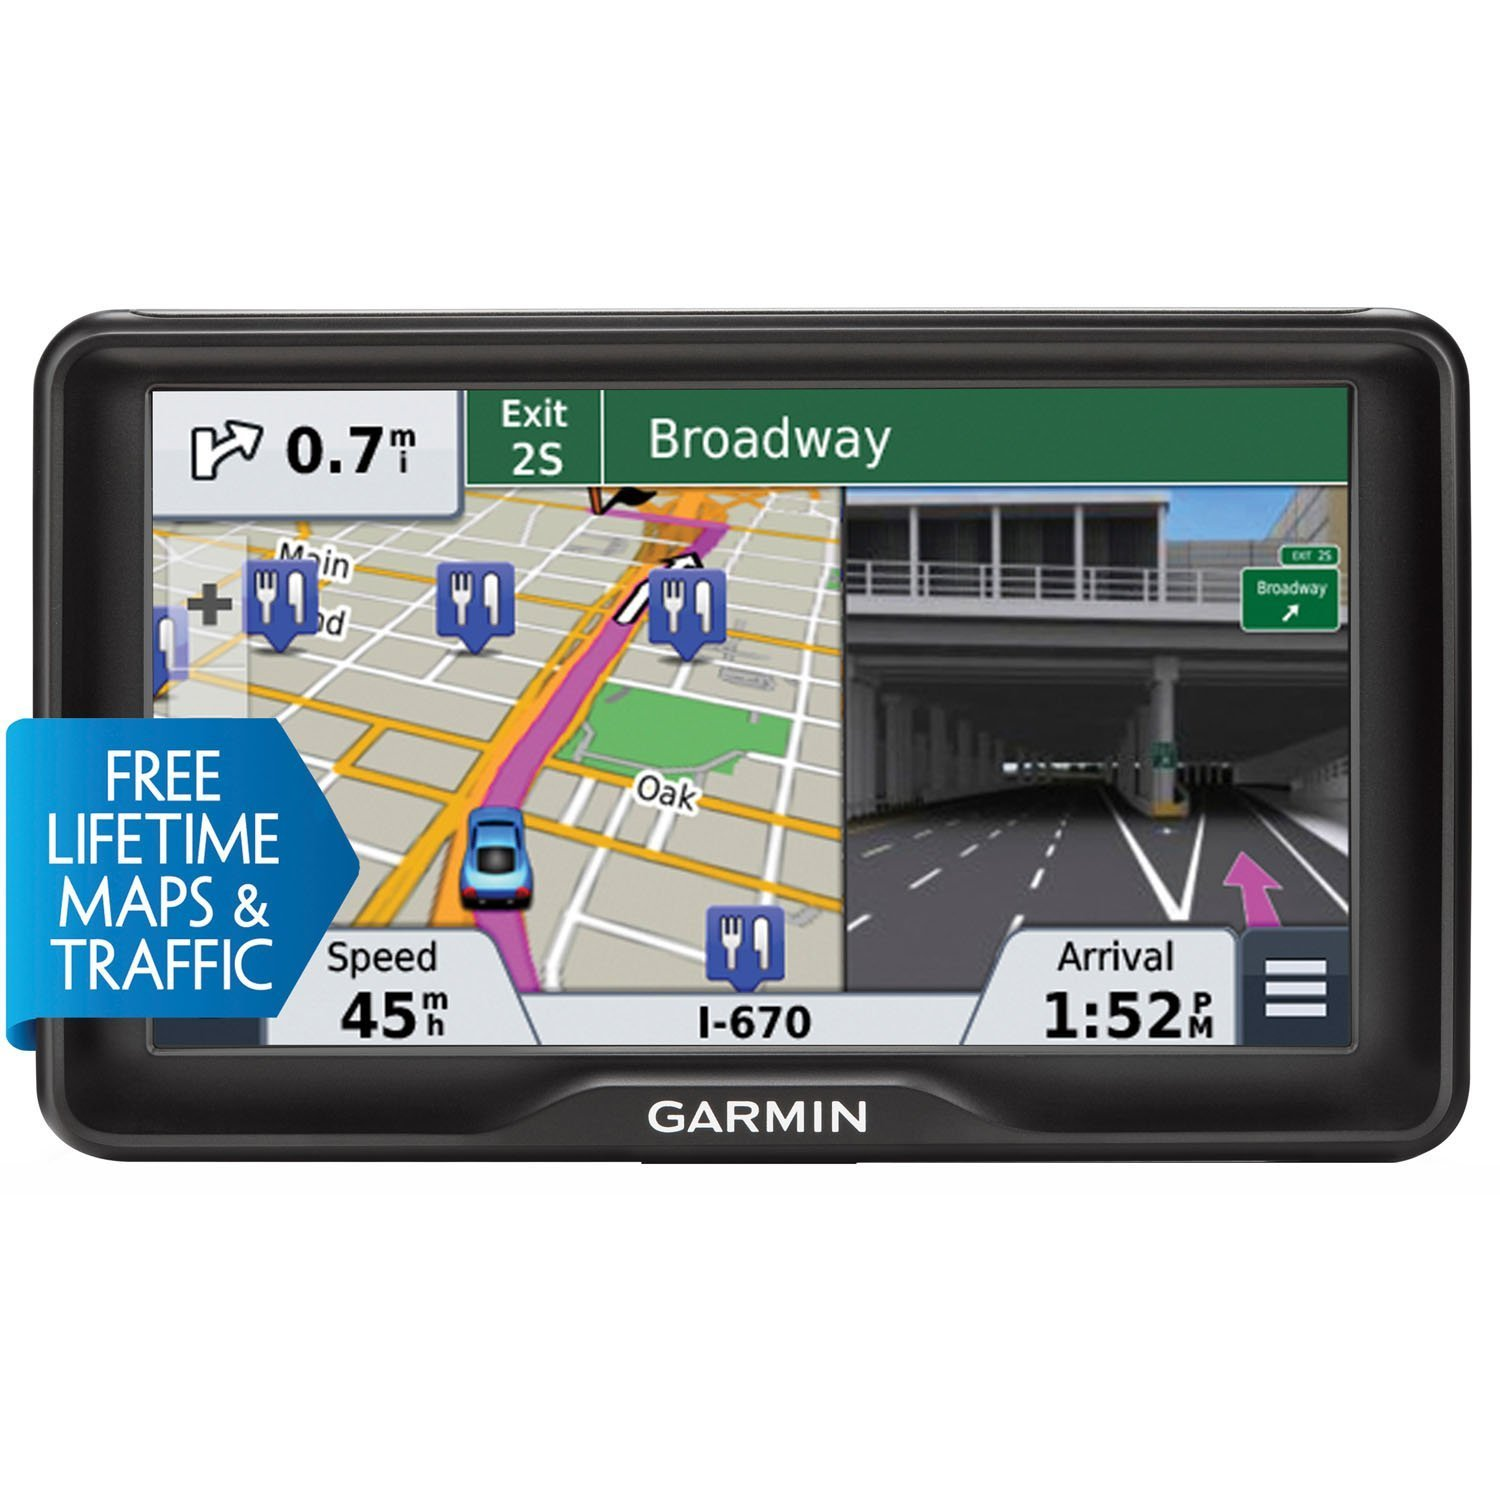 Garmin nuvi 2797LMT 7-Inch Portable Bluetooth Vehicle GPS with Lifetime Maps and Traffic (Certified Refurbished) by Garmin